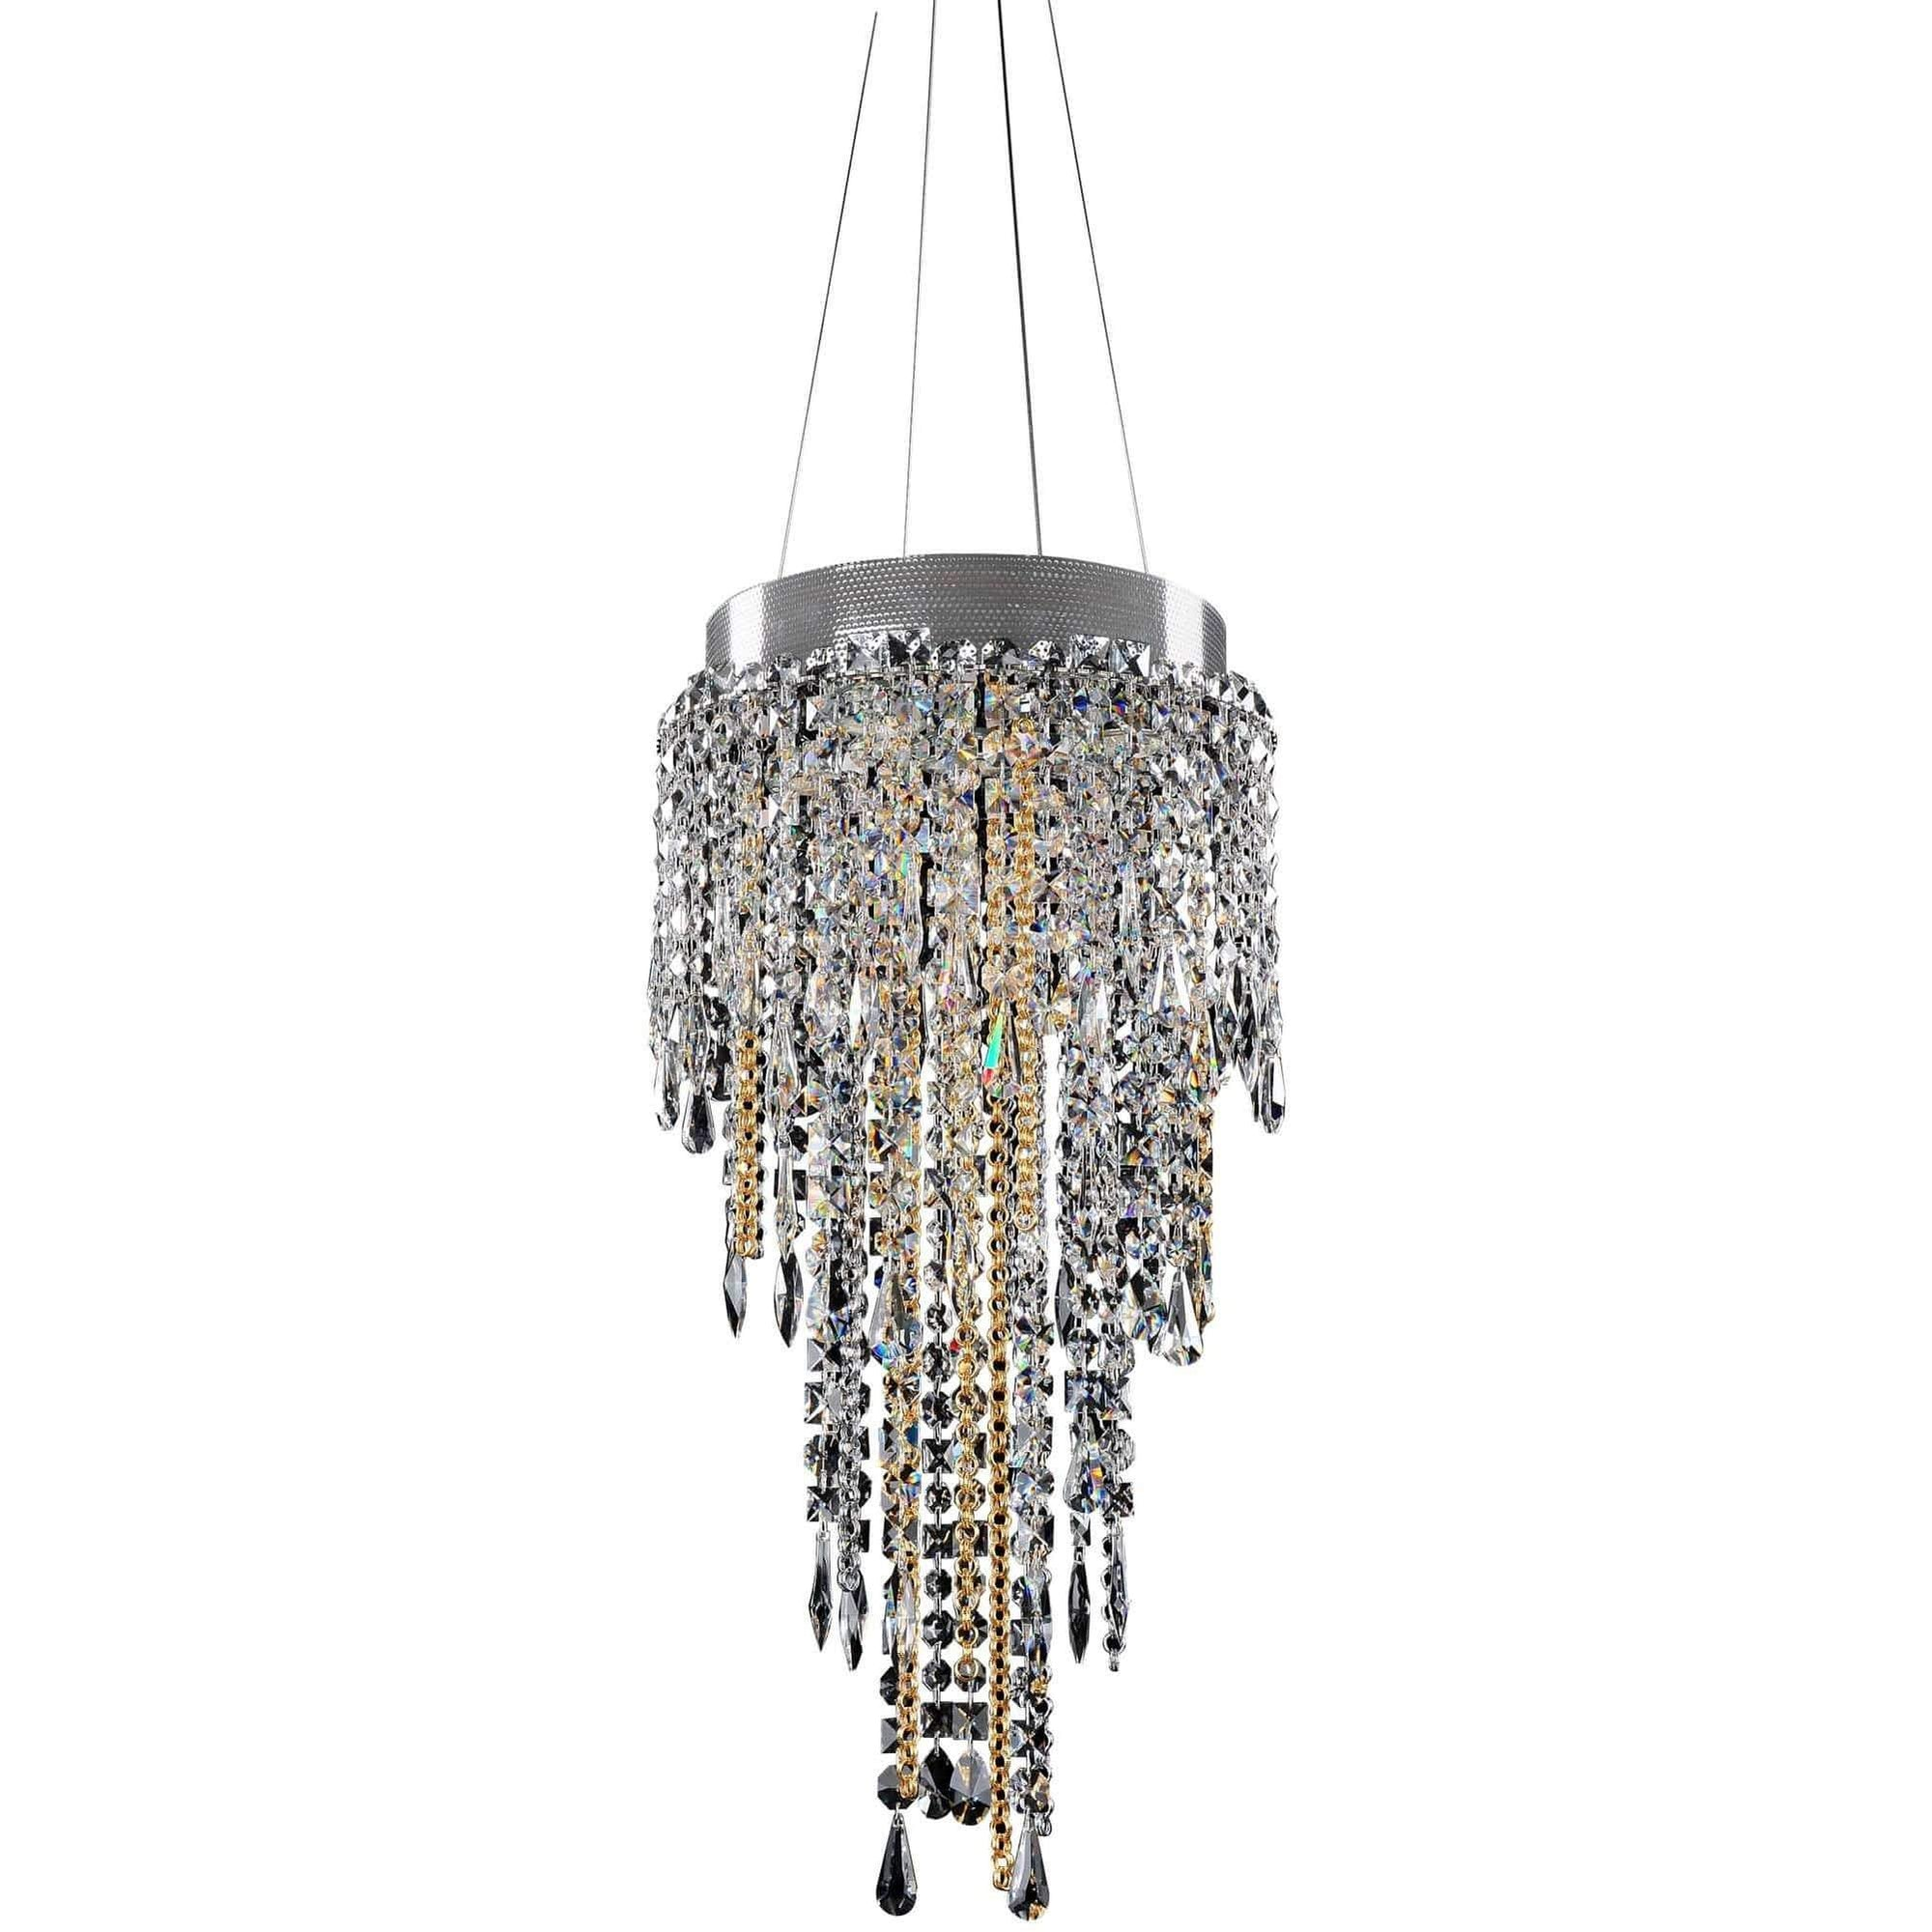 Allegri by Kalco Lighting Pendants Chrome / Firenze Clear Tenuta 14 Inch Convertible Pendant - Flush Mount From Allegri by Kalco Lighting 028250